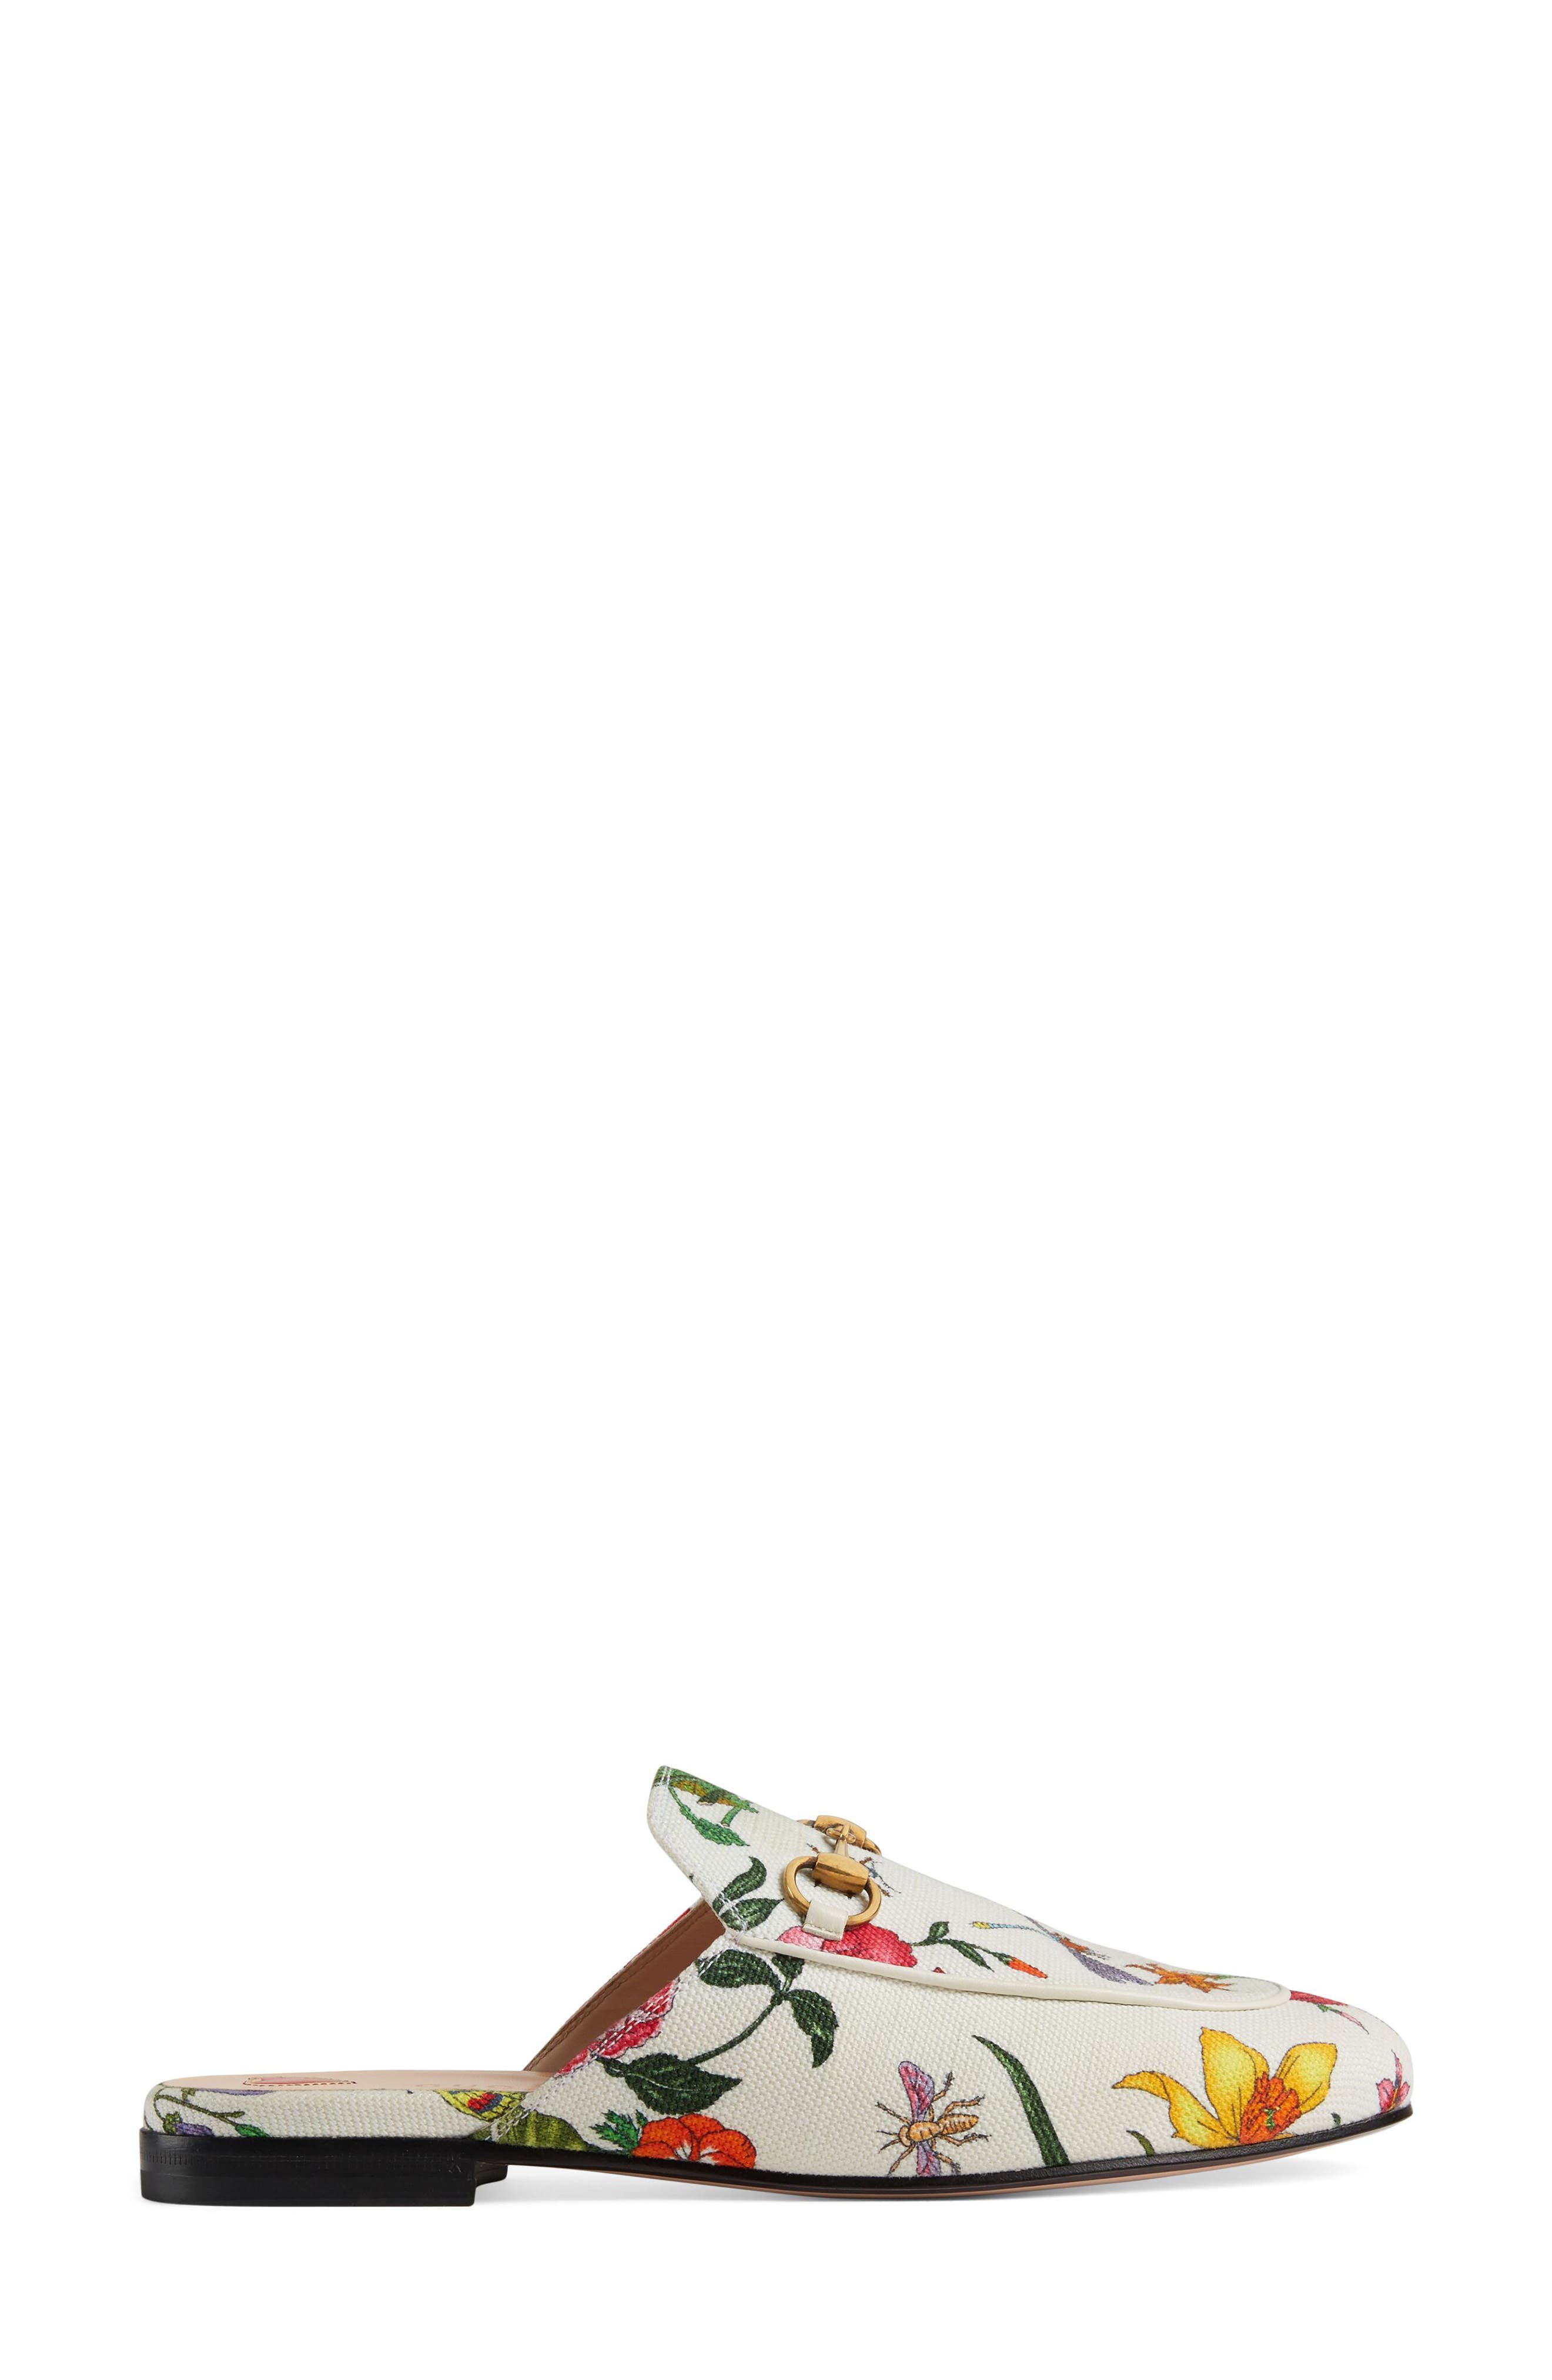 Princetown Loafer Mule,                             Alternate thumbnail 2, color,                             WHITE FLORAL